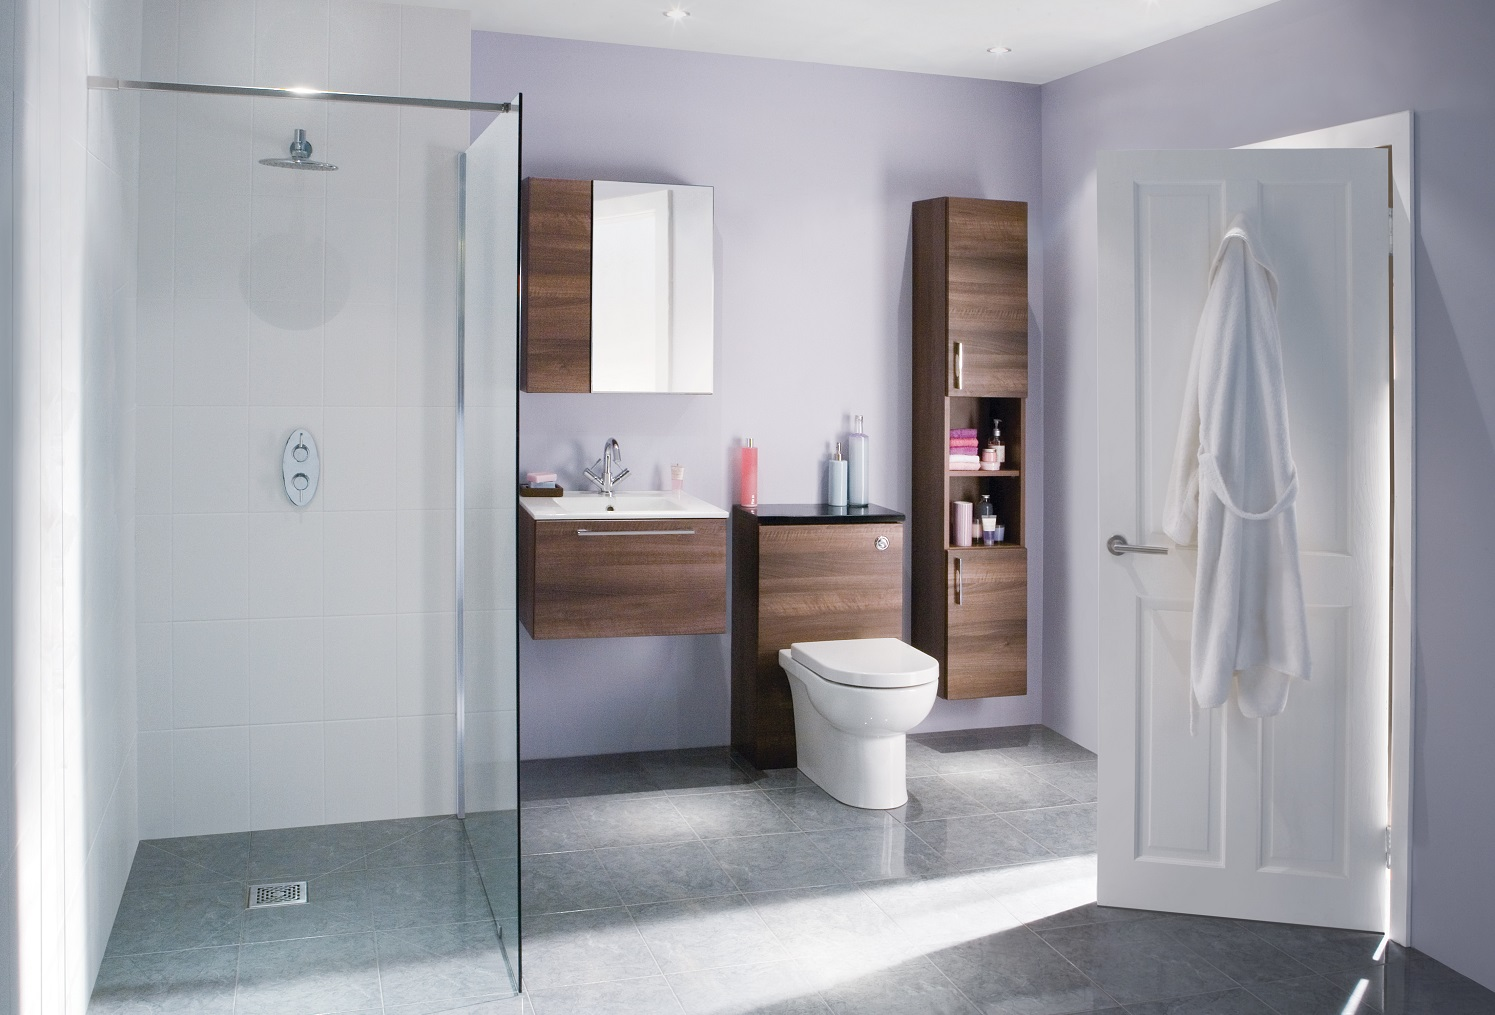 Popular Rest Wet Rooms A Wet Room Is Where Shower Is Completely Open Hasa Essential Guide To Walk Shower Isflush Bathroom Shower Area Showers houzz-03 Wet Room Bathroom